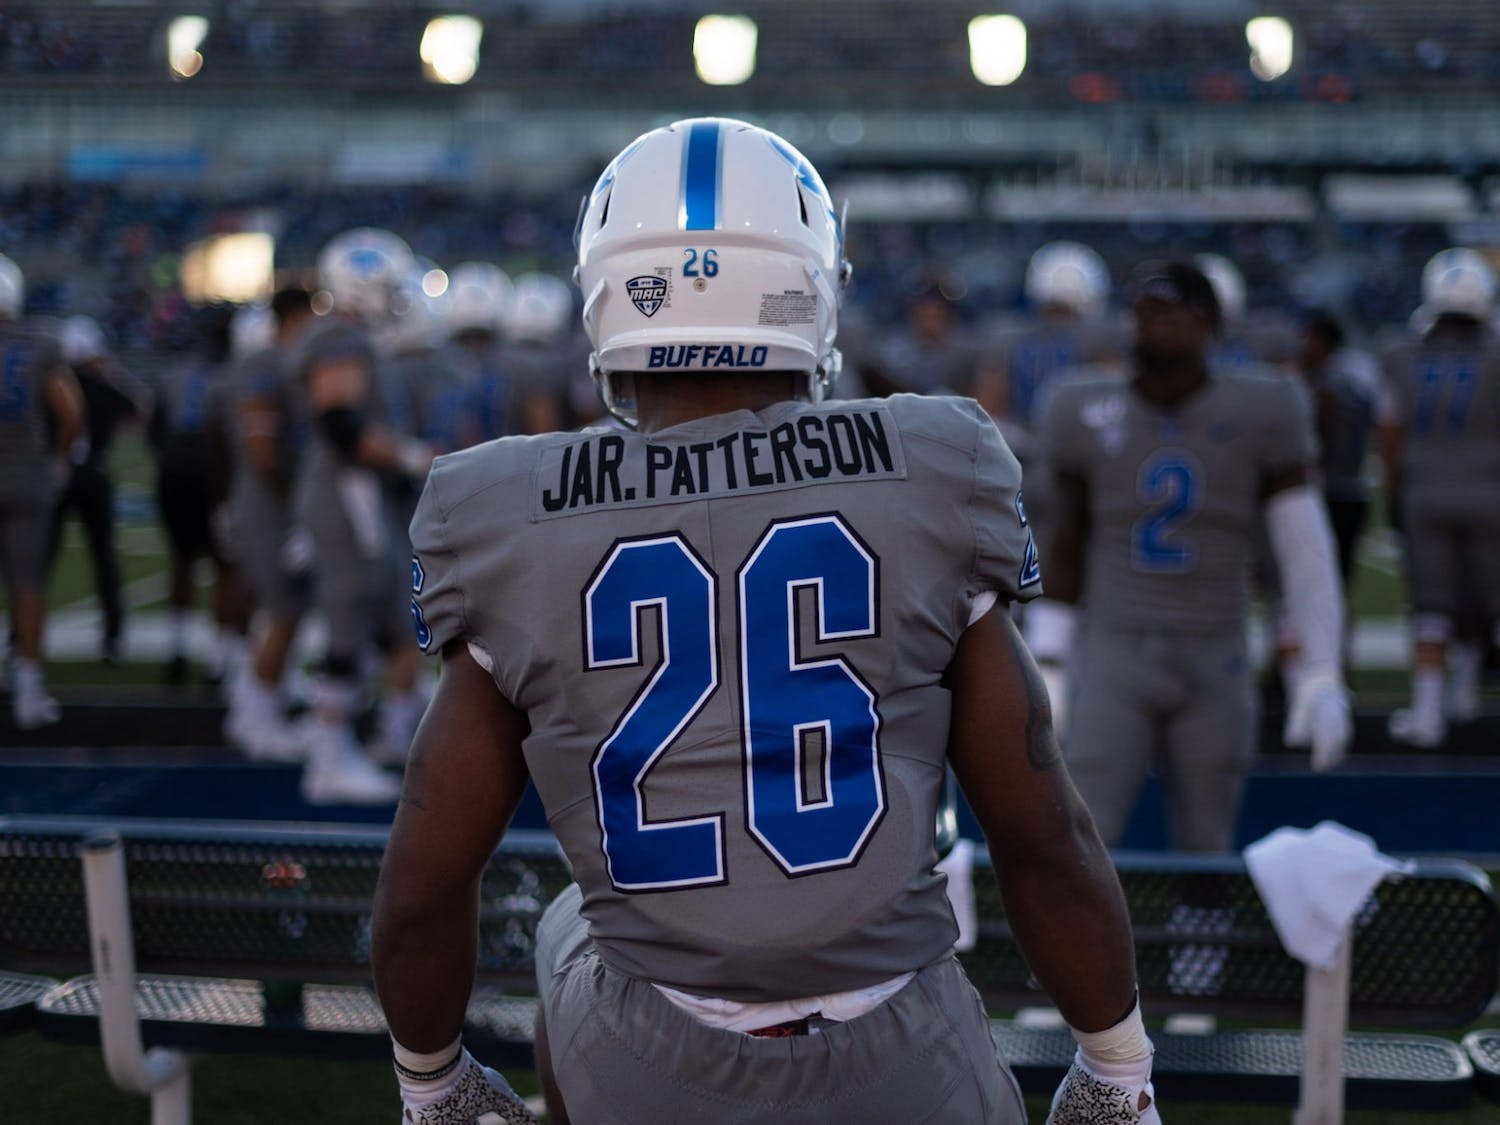 Sophomore running back Jaret Patterson getting ready to take the field.